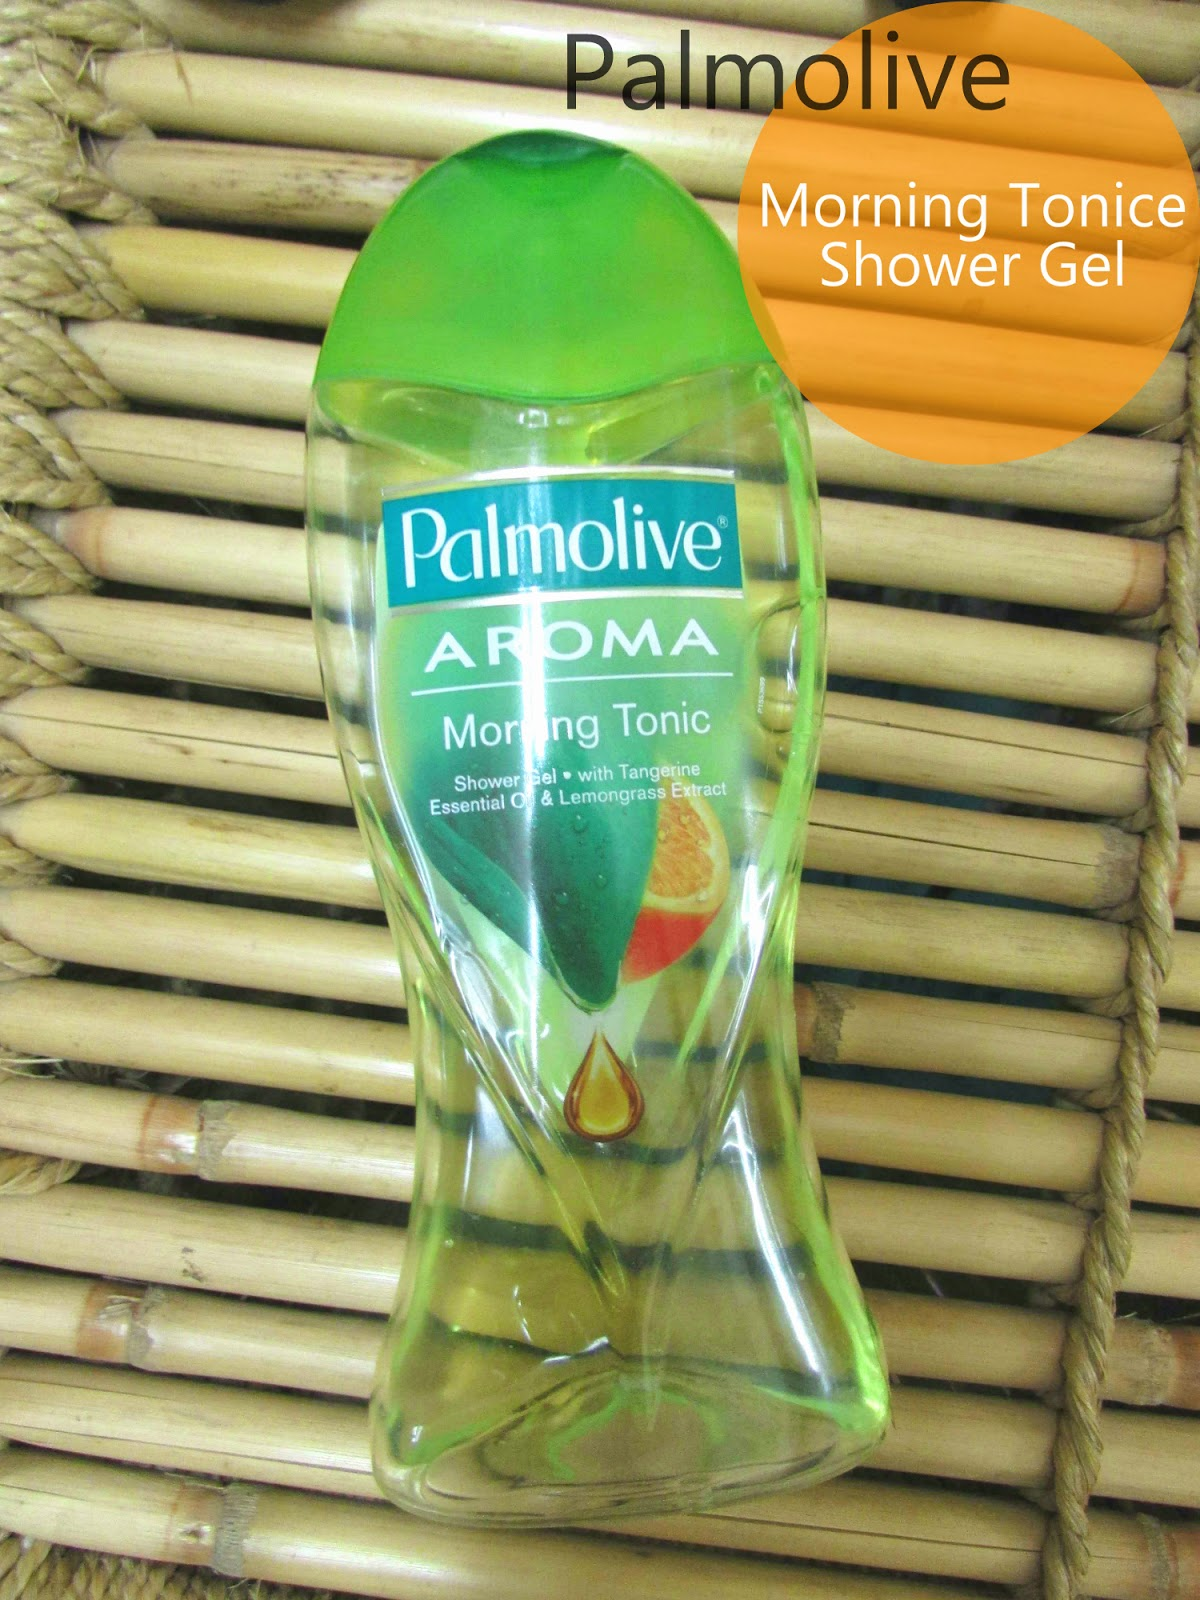 Body wash, body wash review, body wash review india, body wash price, body wash price india, body wash price and review, body wash price and review india, shower gel , shower gel review, shower gel review india, shower gel price, shower gel price india, shower gel price and review, shower gel price and review india, how to use shower gel, how to use body wash, how to use shower gel without loofa , how to use shower gel with hands, how to use body wash without loofa, how to use body wash with hands, how to use body wash with loofa, how to use shower gel with loofa, best shower gel, worst shower gel, best body wash, worst body wash,how to take bath with body wash, how to take bath with shower gel, how to take bath without soap, how to take bath, how to take shower, how to clean body, economical shower gel, economical body wash, palmolive shower gel, palmolive body wash , palmolive shower gel review, palmolive shower gel review india, palmolive shower gel price, palmolive shower gel price india, palmolive body wash ,palmolive body wash review, palmolive body wash review india, palmolive body wash price, palmolive body wash price india, palmolive body wash review and price india, palmolive shower gel review and price, palmolive body wash review and price india, palmolive shower gel review and price india, palmolive aroma absolute relax shower gel, palmolive aroma absolute relax body wash, palmolive aroma absolute relax shower gel review, palmolive aroma absolute relax shower gel review india, palmolive aroma absolute relax shower gel price, palmolive aroma absolute relax shower gel price india, palmolive aroma absolute relax shower gel price and review, palmolive aroma absolute relax shower gel price and review india, palmolive aroma absolute relax body wash review, palmolive aroma absolute relax body was, palmolive aroma absolute relax body wash review india, palmolive aroma absolute relax price, palmolive aroma absolute relax body wash price india, palmolive aroma absolute relax review and price, palmolive aroma absolute relax price and review india, palmolive soap, palmolive, palmolive india, palmolive aroma absolute relax, palmolive aroma shower gel, palmolive aroma body shop, palmolive aroma shower gel review, palmolive aroma shower gel price, palmolive aroma shower gel price india, palmolive aroma shower gel review india, palmolive absolute relax shower gel, palmolive absolute relax shower gel review, palmolive absolute  shower gel review india, palmolive absolute relax shower gel price india, palmolive absolute relax shower gel price, palmolive absolute relax shower gel price and review , palmolive absolute relax shower gel price and review india, shower gel with herbal oil, shower gel with essential oil, shower gel with iris extract, shower gel with foam, shower gel that lathers, moisturising shower gel, hydrating shower gel, moisturising body wash, hydrating body wash, most moisturising body wash, most hydrating body wash, most moisturising shower gel,most hydrating shower gel, is using body wash good, is using shower gel good,Is using body wash hygienic, is using shower gel hygienic,beauty , fashion,beauty and fashion,beauty blog, fashion blog , indian beauty blog,indian fashion blog, beauty and fashion blog, indian beauty and fashion blog, indian bloggers, indian beauty bloggers, indian fashion bloggers,indian bloggers online, top 10 indian bloggers, top indian bloggers,top 10 fashion bloggers, indian bloggers on blogspot,home remedies, how to,palmolive morning tonicshower gel, palmolive morning tonic body wash, palmolive morning tonic shower gel review, palmolive morning tonic shower gel review india, palmolive morning tonic shower gel price, palmolive morning tonic shower gel price india, palmolive morning tonic shower gel price and review, palmolive morning tonic shower gel price and review india, palmolive morning tonic body wash review, palmolive morning tonic body was, palmolive morning tonic body wash review india, palmolive morning tonic price, palmolive morning tonic body wash price india, palmolive morning tonic review and price, palmolive morning tonic price and review india, palmolive soap, palmolive, palmolive india, palmolive morning tonic, palmolive aroma shower gel, palmolive aroma body shop, palmolive morning tonic shower gel review, palmolive aroma shower gel price, palmolive aroma shower gel price india, palmolive aroma shower gel review india, palmolive absolute relax shower gel, palmolive absolute relax shower gel review, palmolive absolute  shower gel review india, palmolive absolute relax shower gel price india, palmolive absolute relax shower gel price, palmolive absolute relax shower gel price and review , palmolive absolute relax shower gel price and review india